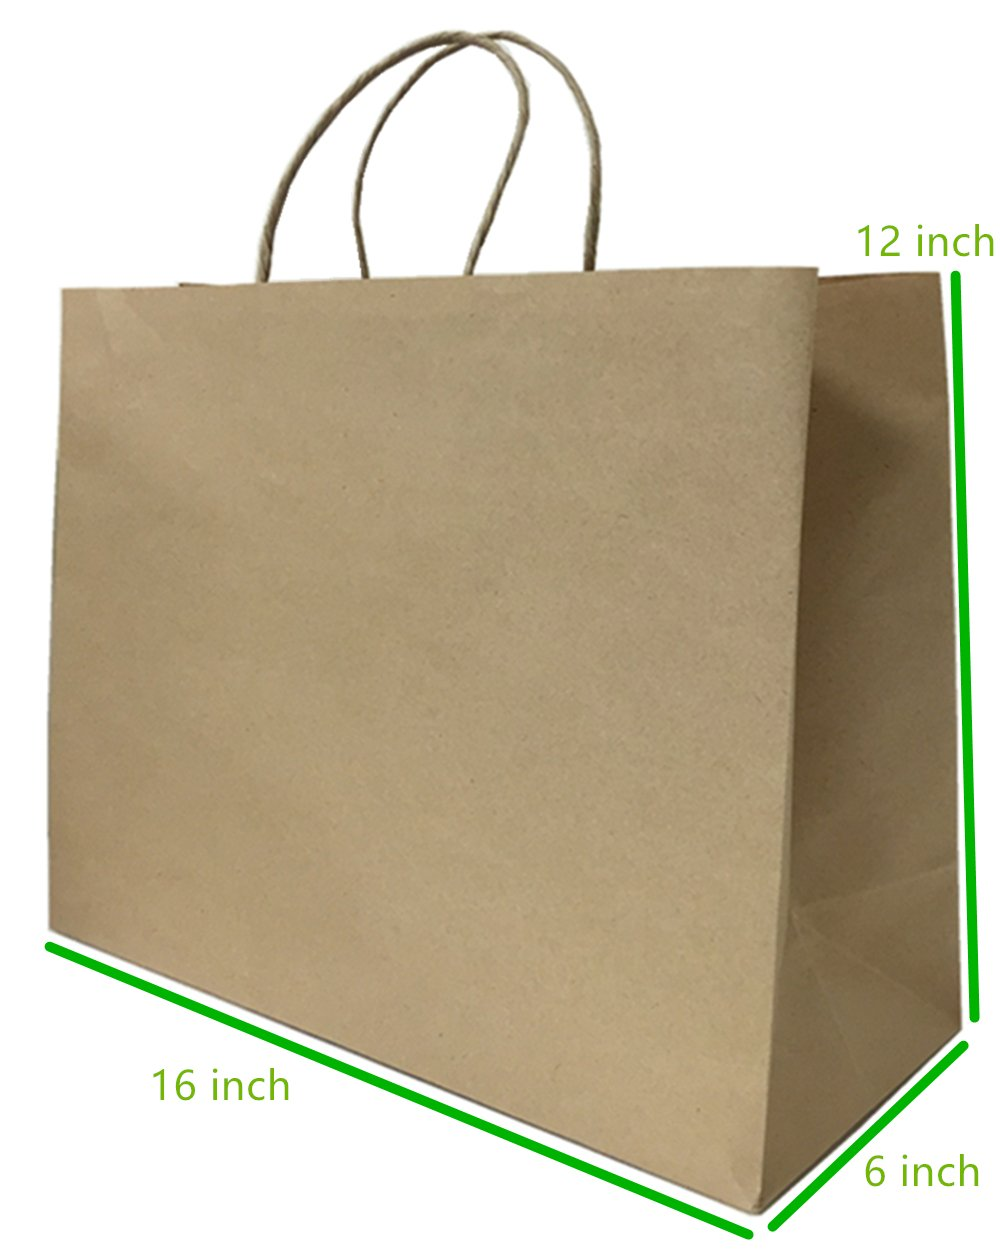 16 X6 X12 50 Pc Metrogalaxy Premium Kraft Paper Bag Gift